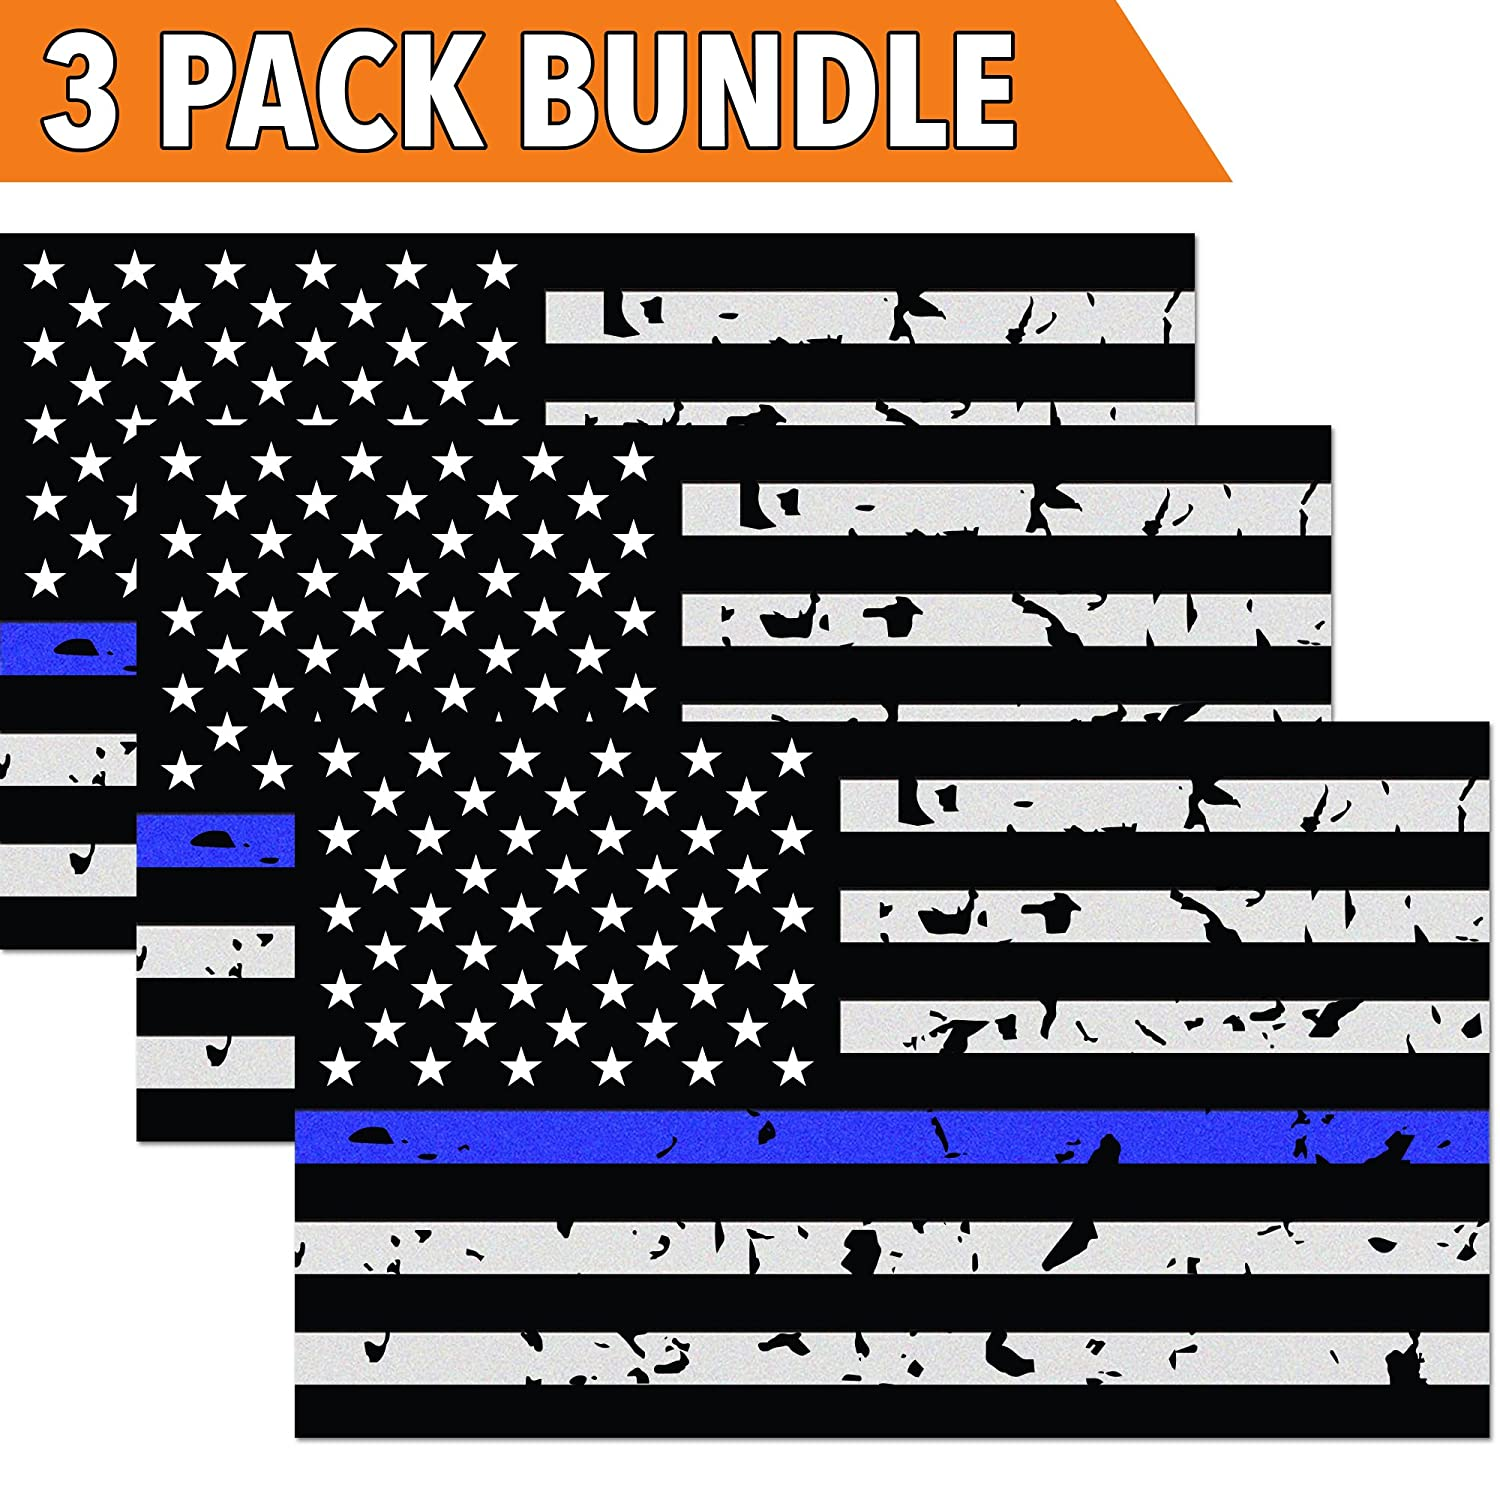 Classic Biker Gear Reflective Thin Blue Line Decal - 3x5 in. American Flag Decal for Cars and Trucks, Support Police and Law Enforcement Officers (3 Pack) CBG-STK-04-3PK